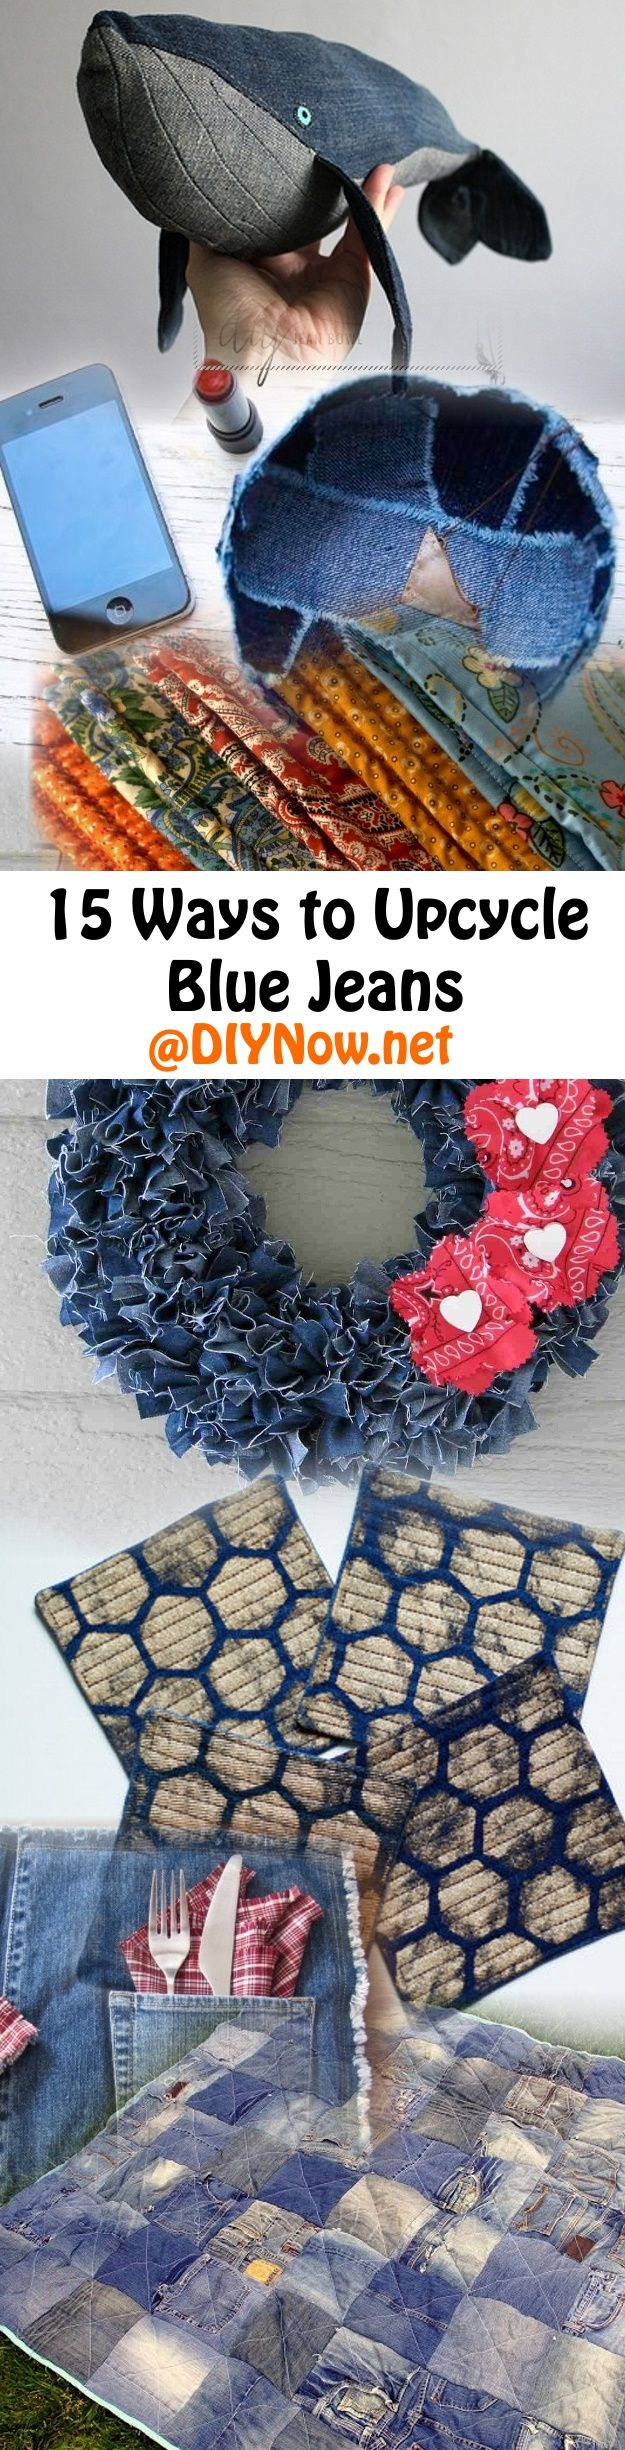 15 Ways to Upcycle Blue Jeans